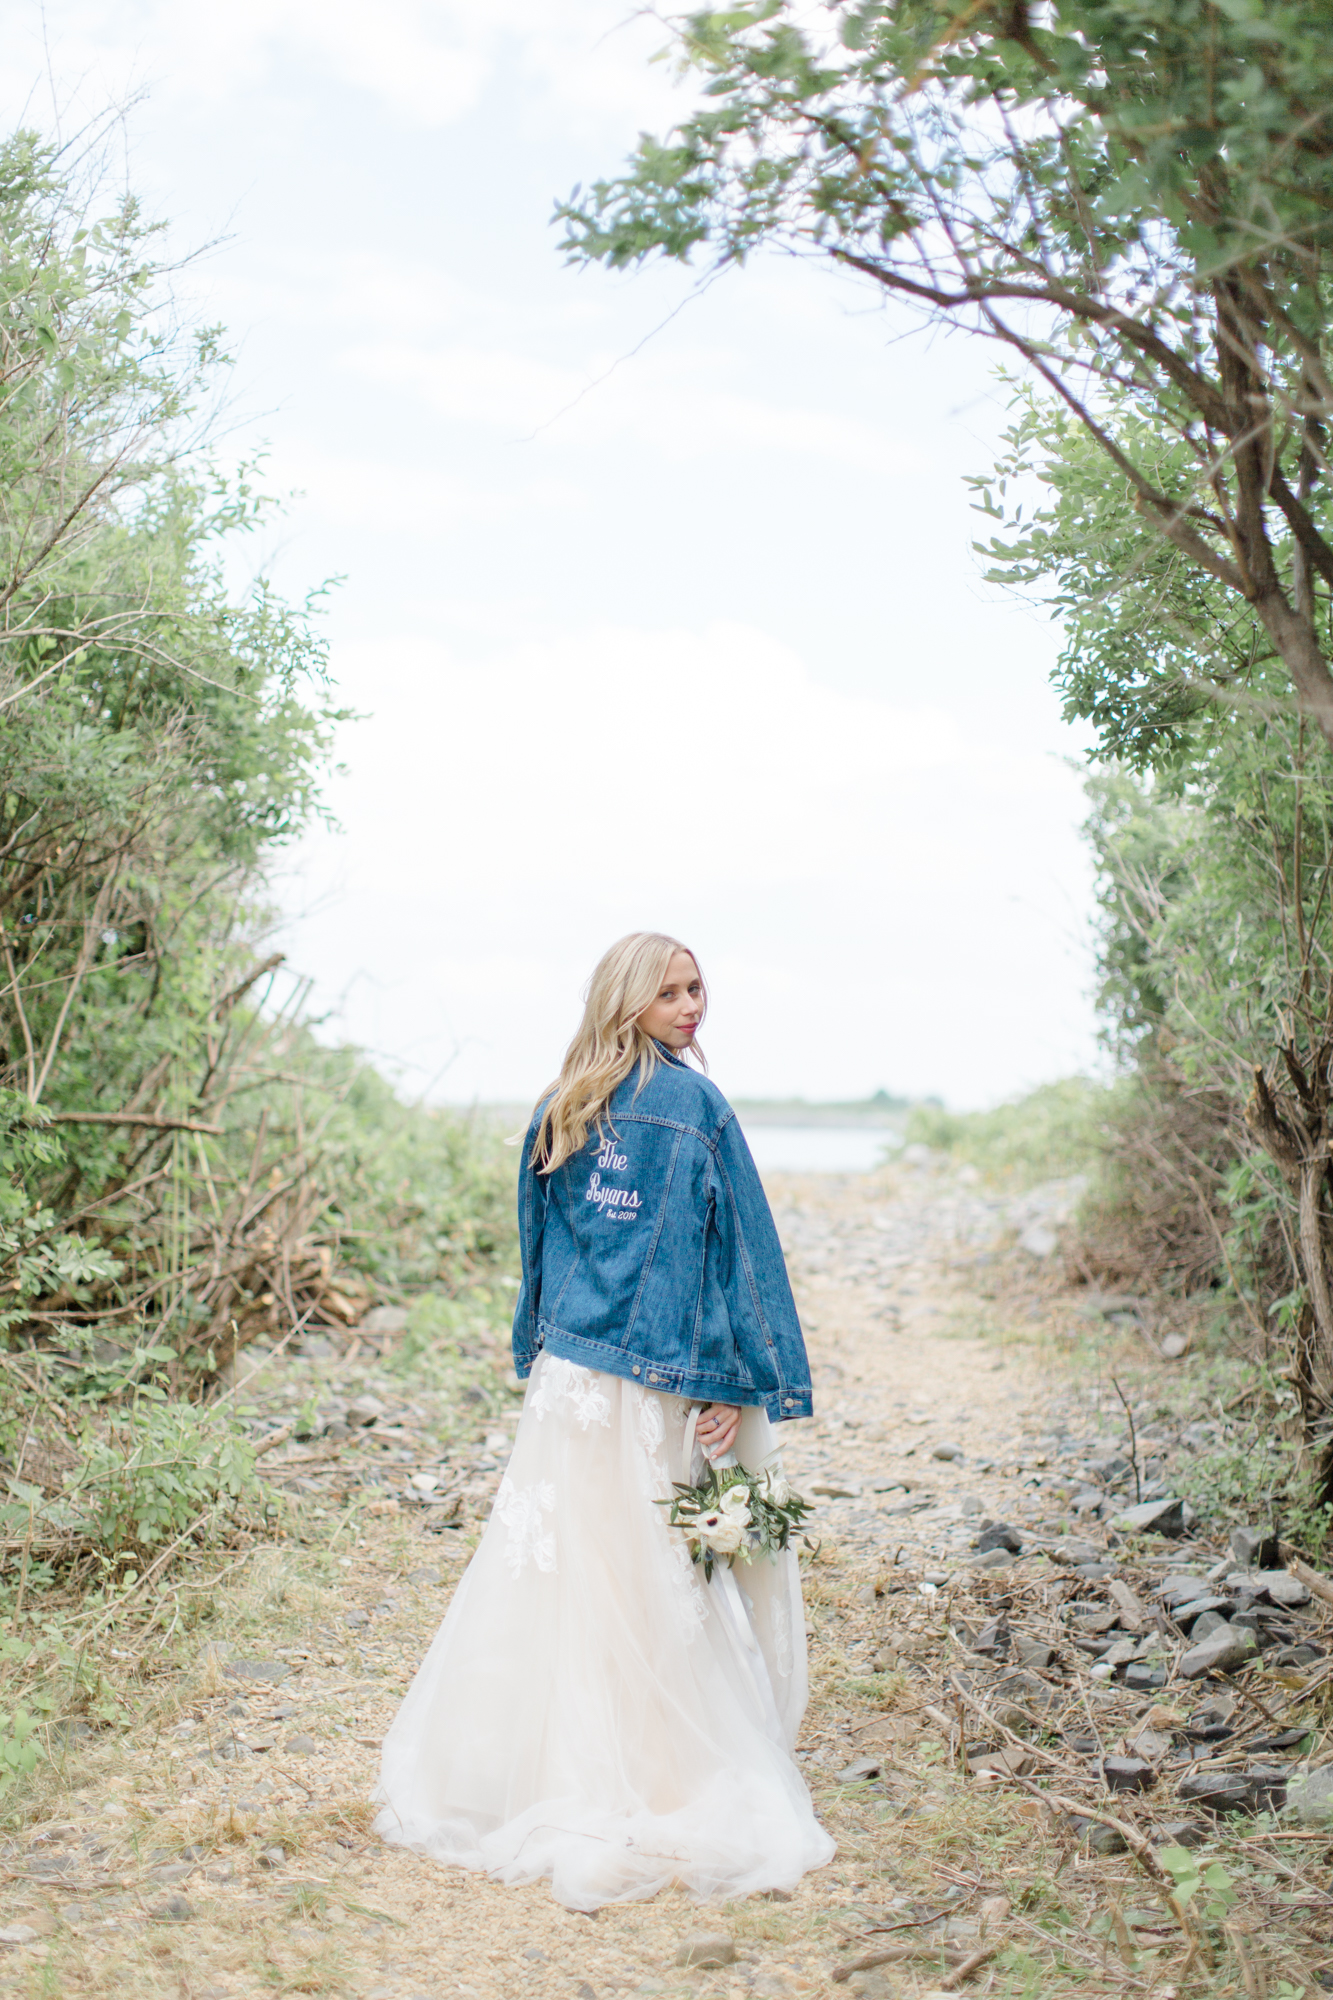 Natalya DeSena Photography _Celia + Jimmy Wedding_Kittery Point, Maine_6.29.19-85.jpg